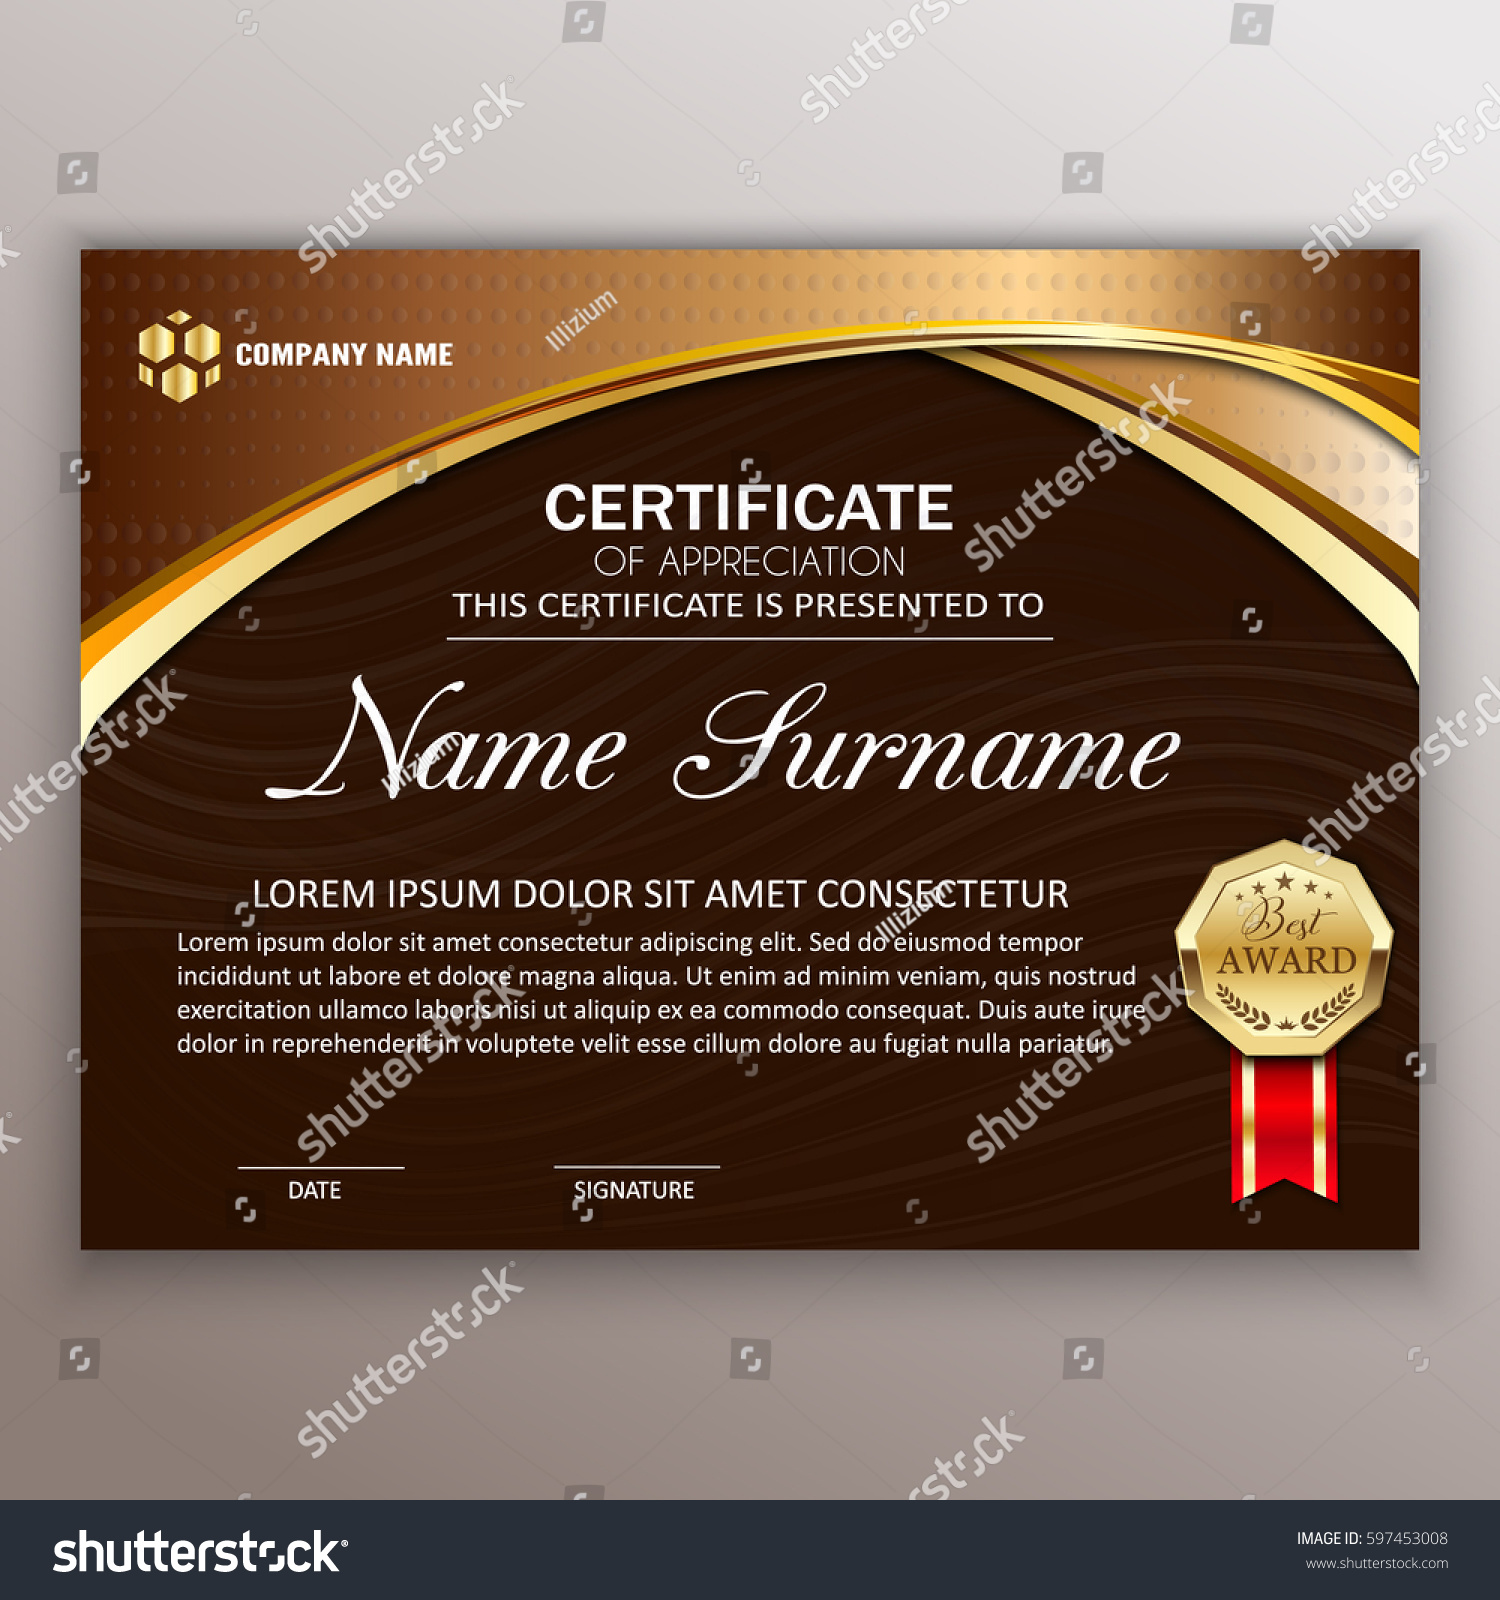 Beautiful Certificate Template Design Best Award Stock ...